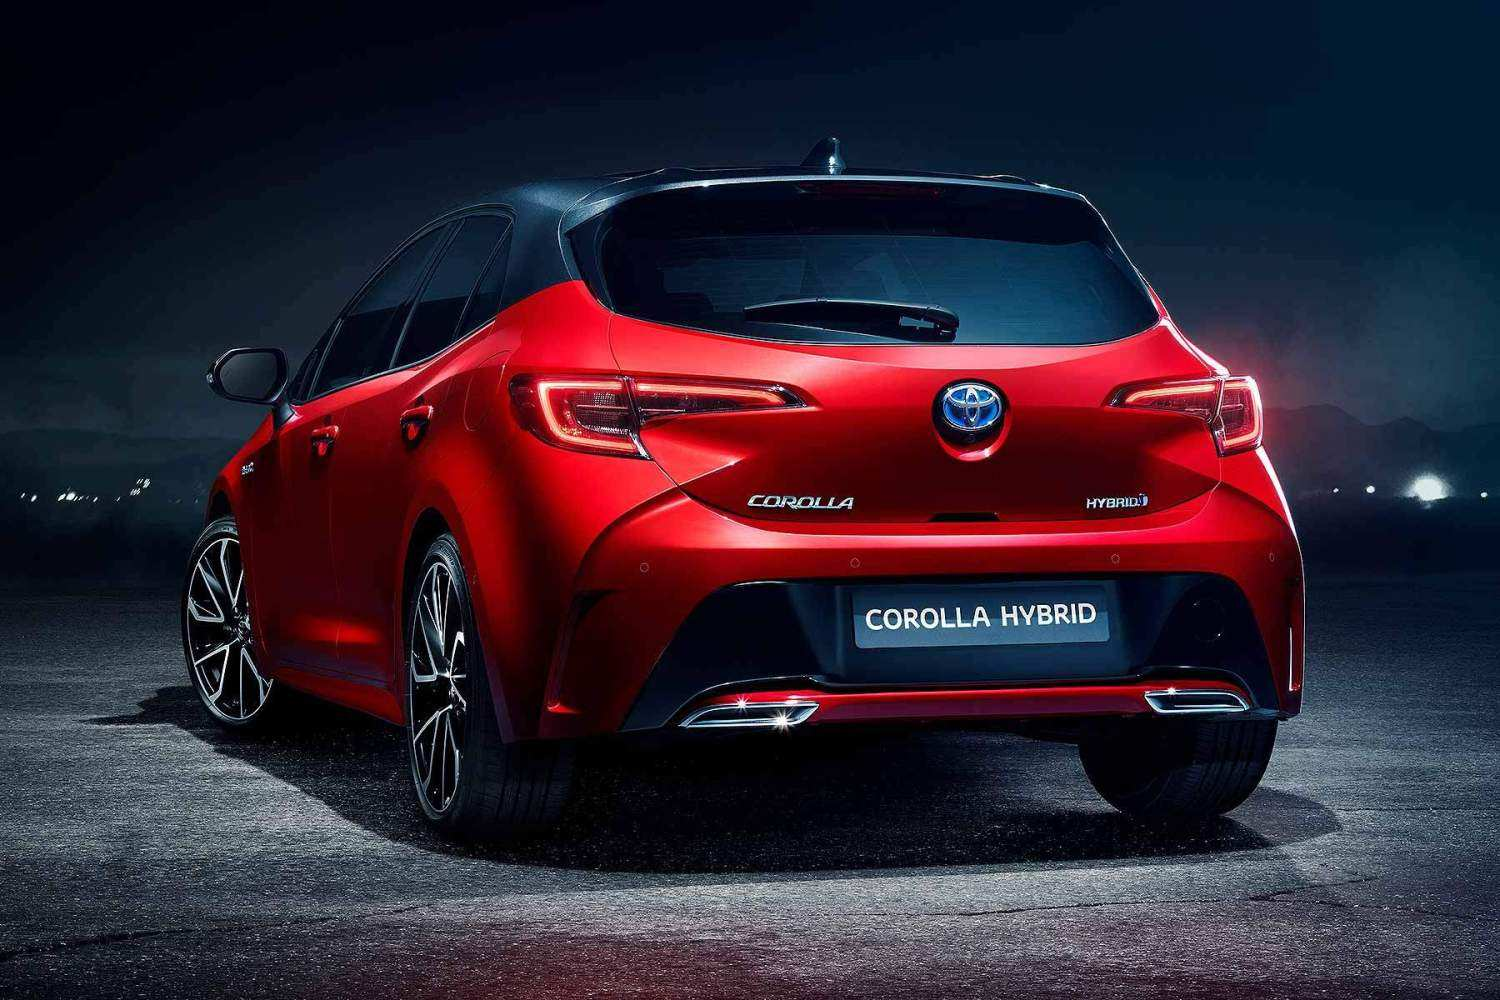 51 The Best 2019 Toyota Auris Pictures